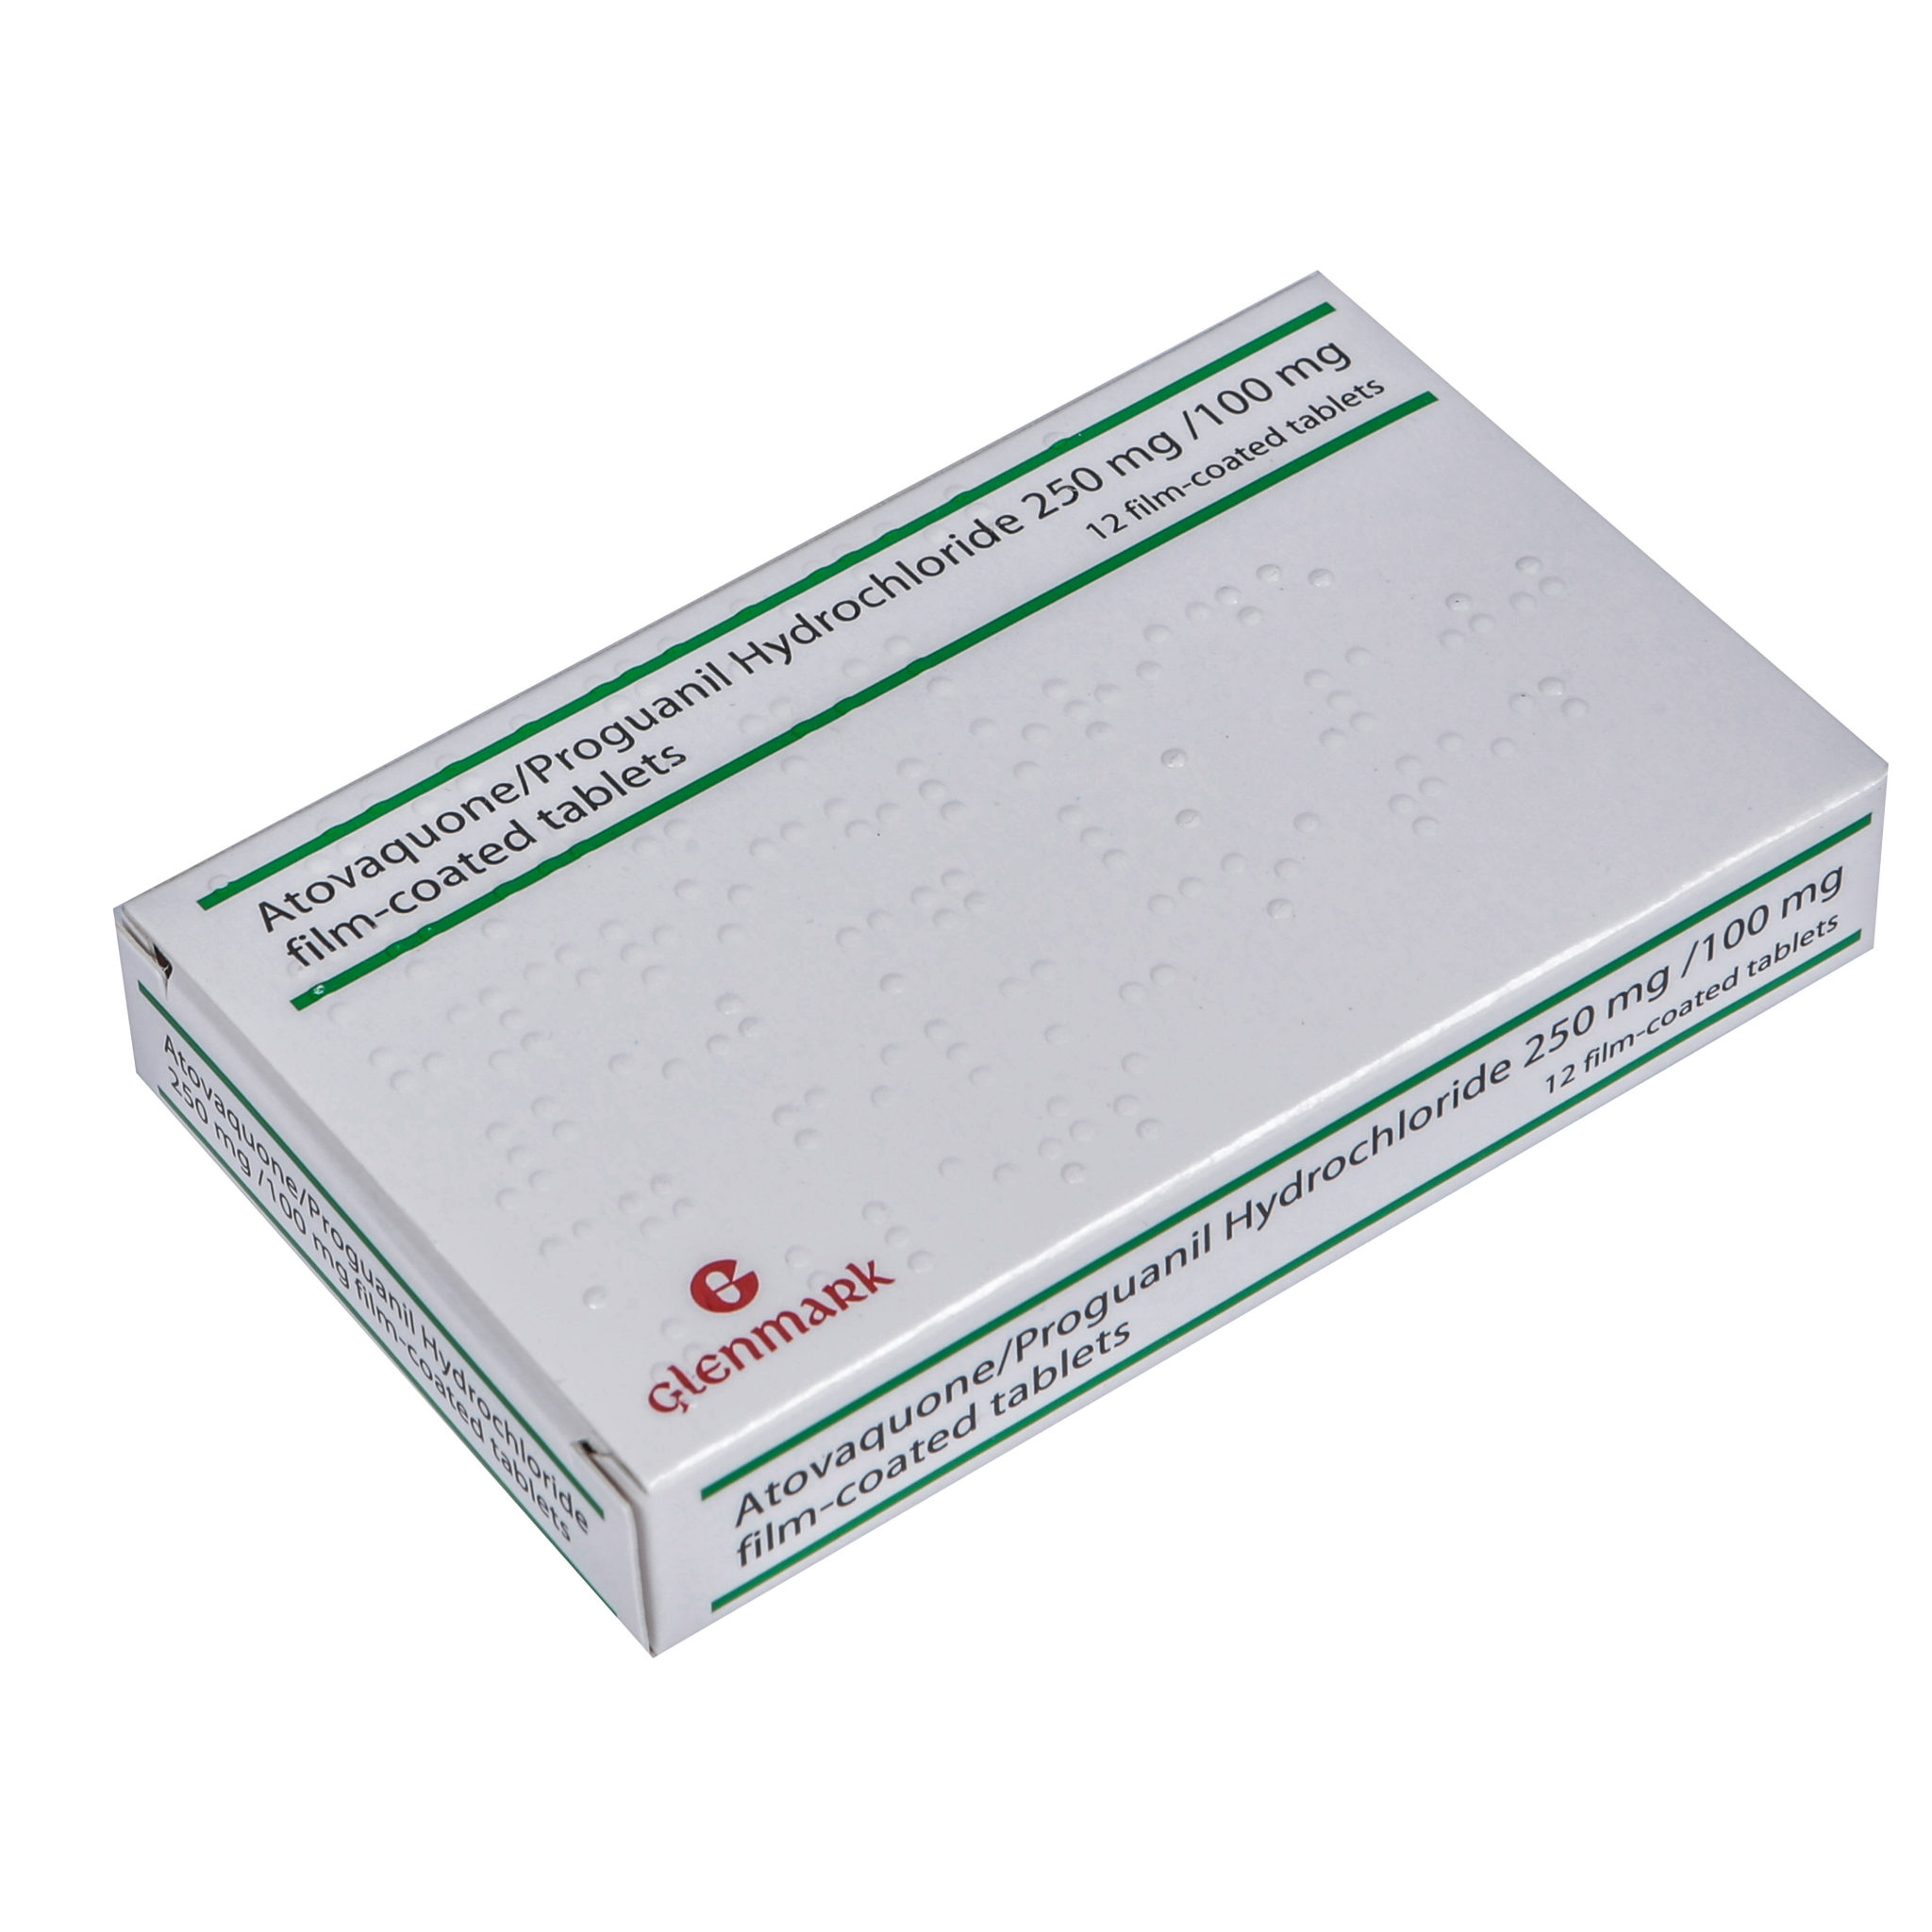 Atovaquone/Proguanil 250mg film coated tablets available at Post My Meds